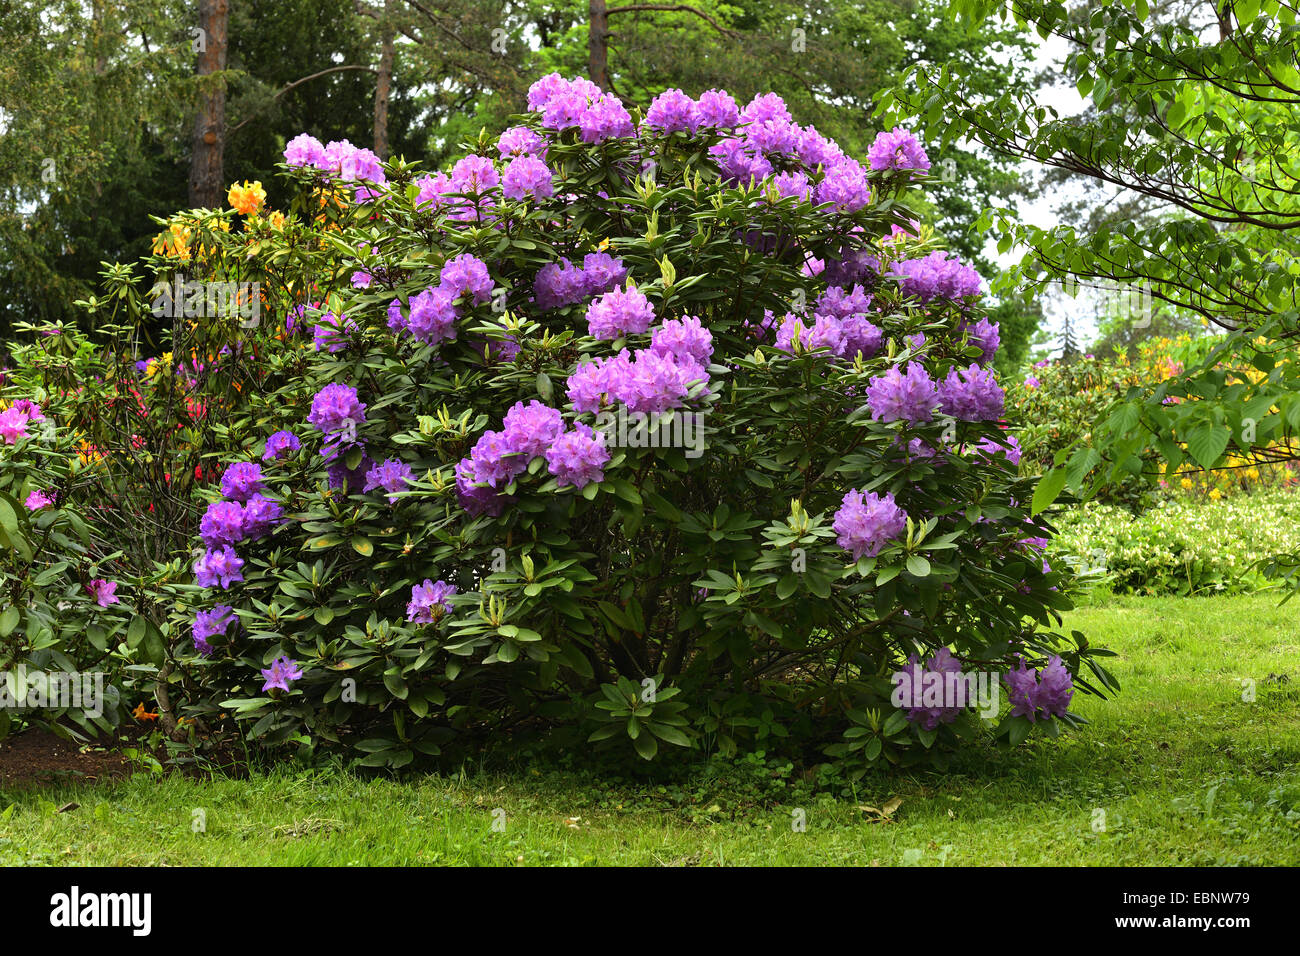 Catawba rhododendron, Catawba rose bay (Rhododendron catawbiense), blooming in a park, Austria, Styria - Stock Image